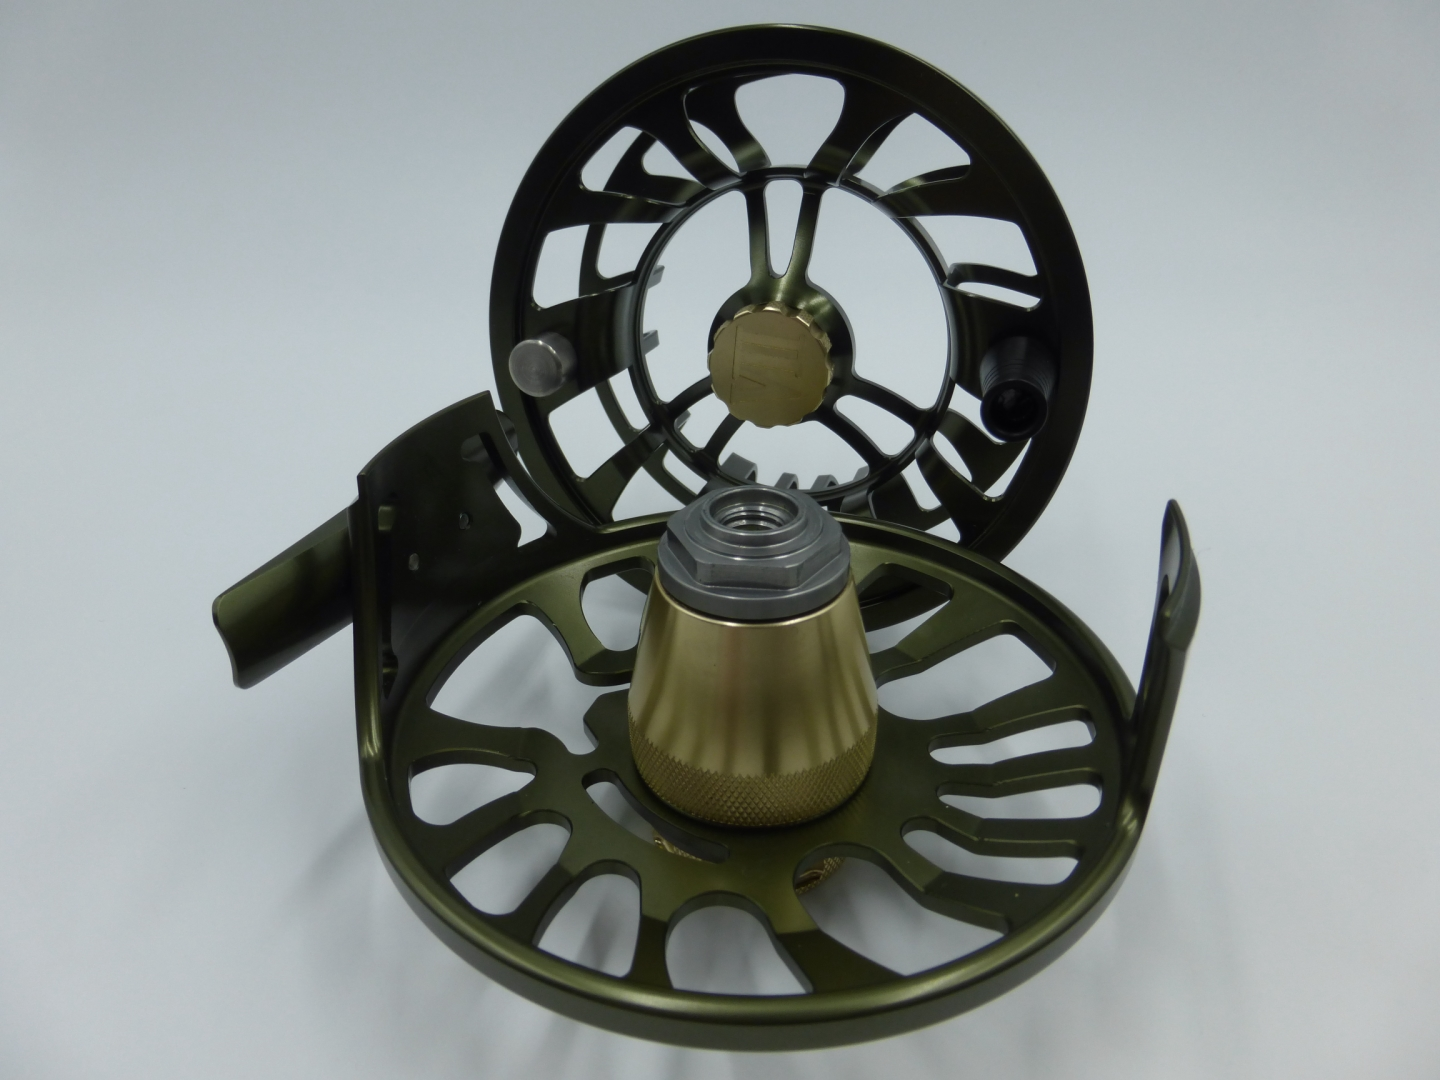 A&M 5 Serie # 5/6 Olive/Gold Fly Spare spool